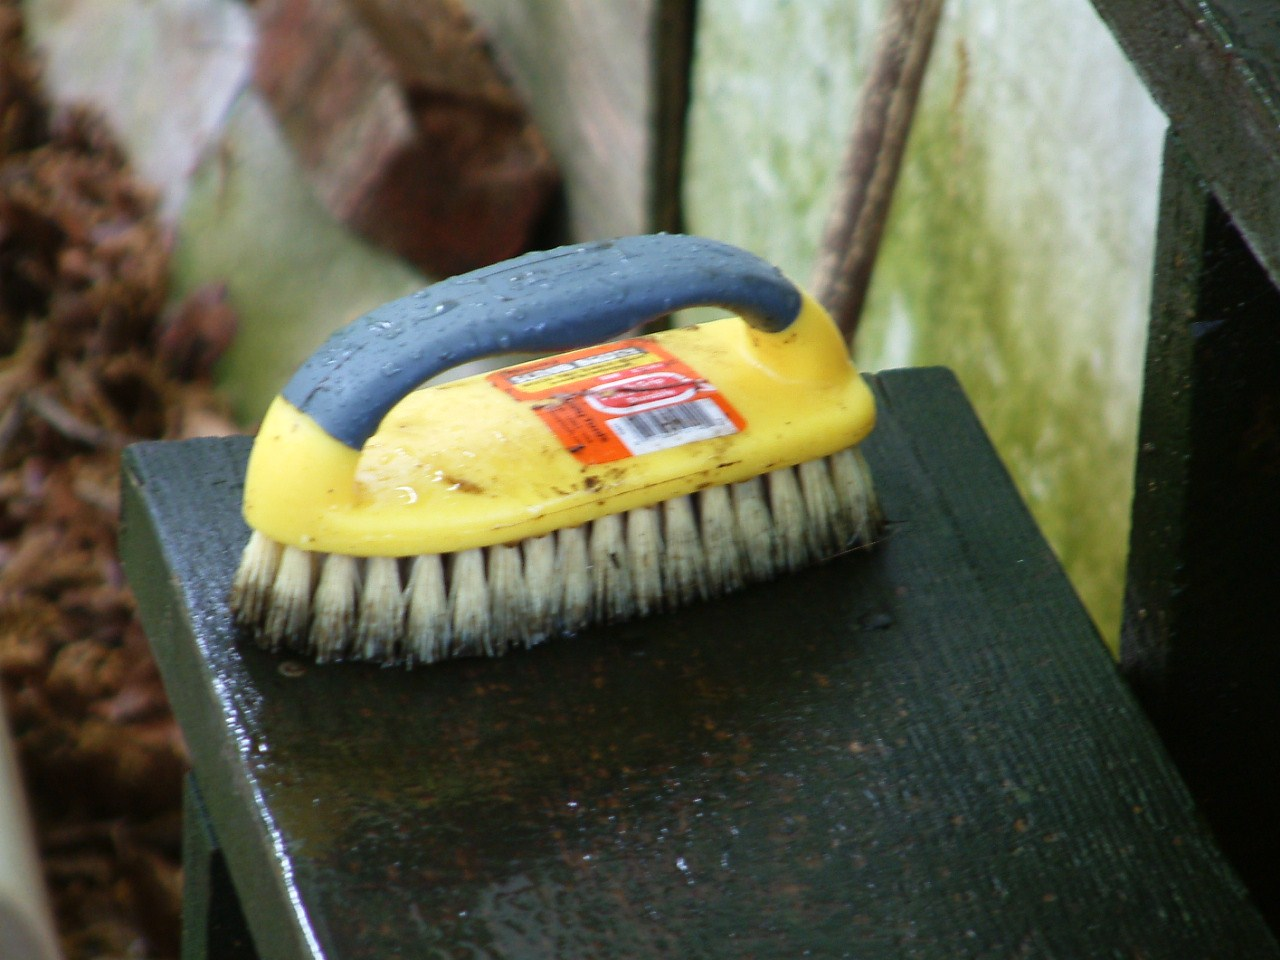 We used a couple of hard scrub brushes to really scrub the gunk off